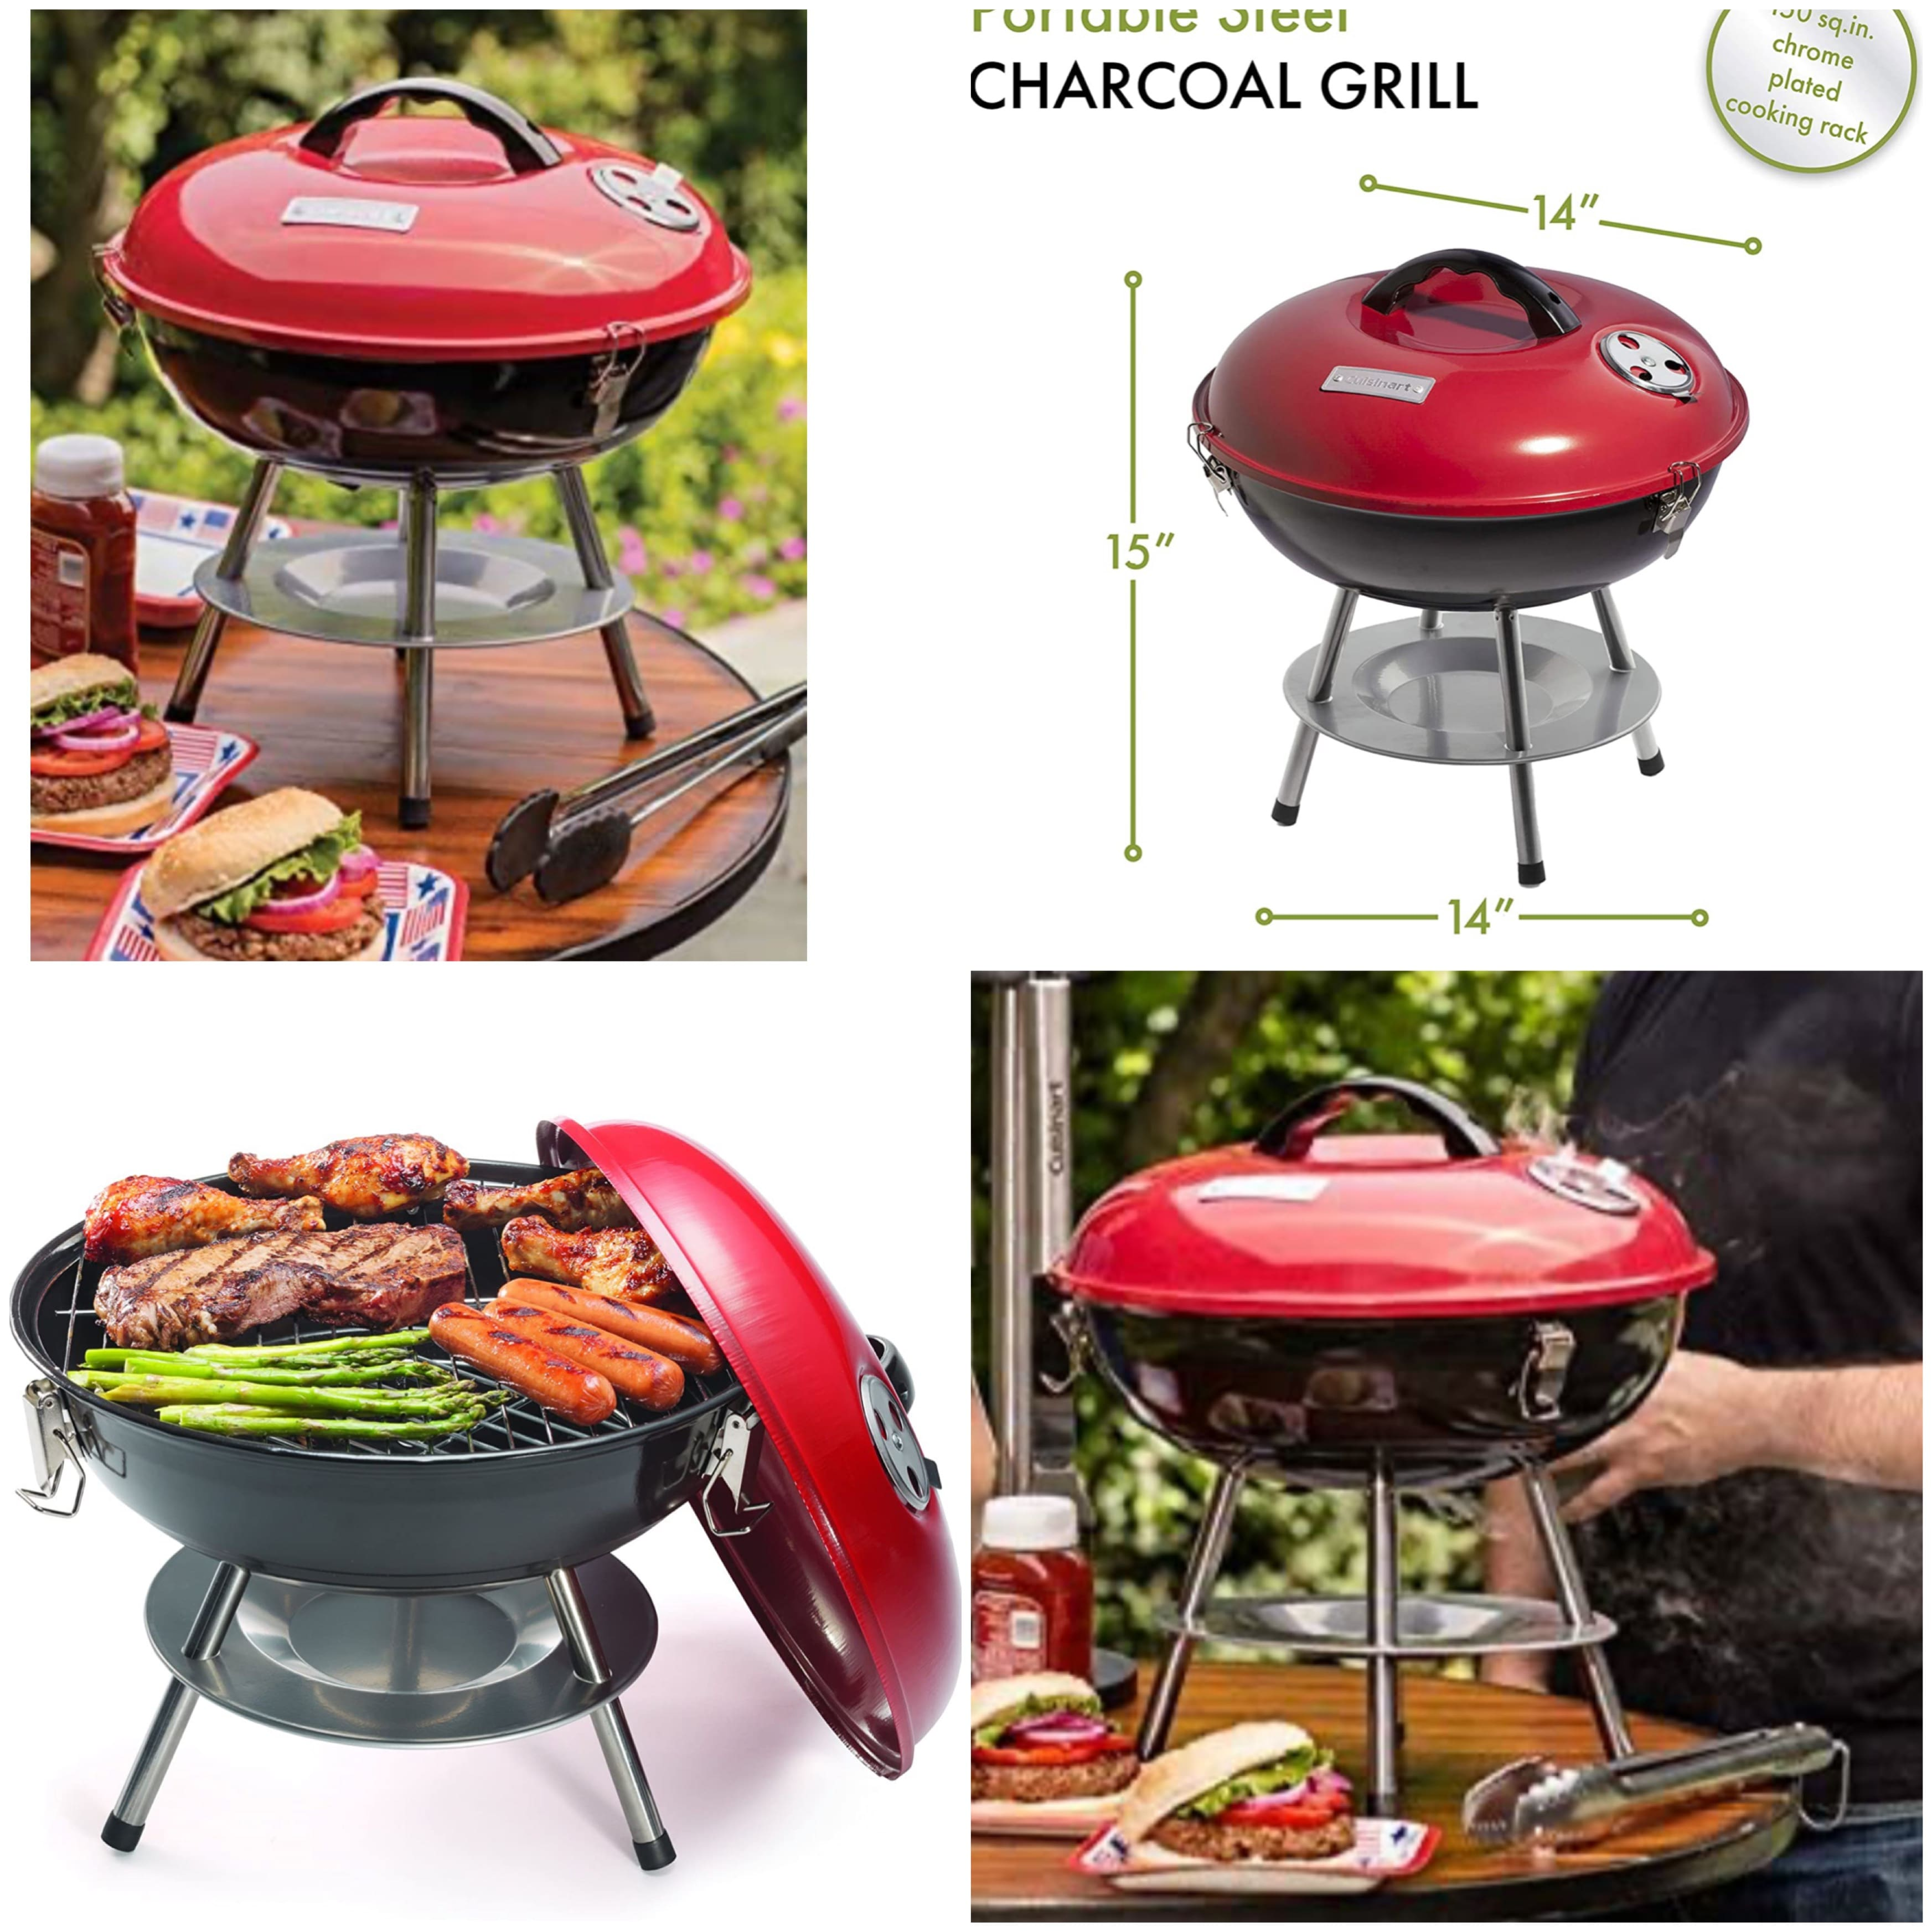 Cuisinart Portable Charcoal Grill, 14-Inch, Red $20.99